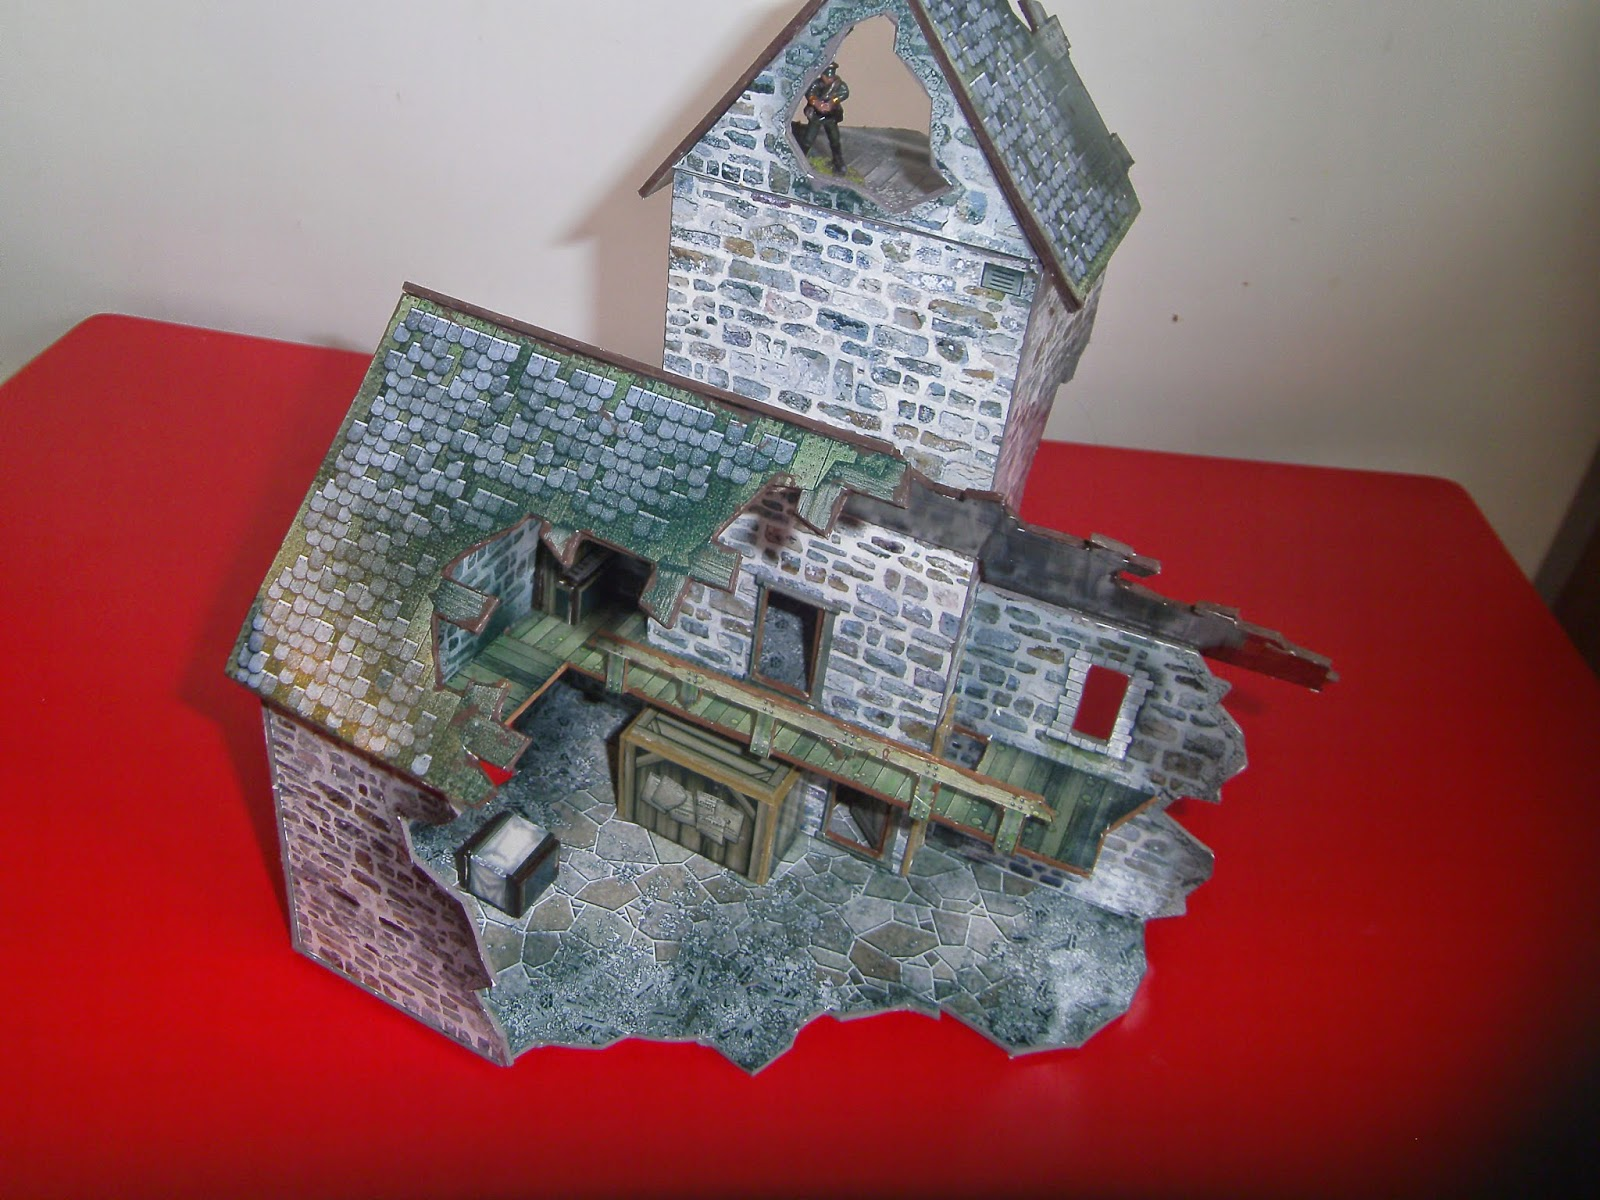 Republic-The Irish Civil War Game: Church Ruin From Dave Graffam models